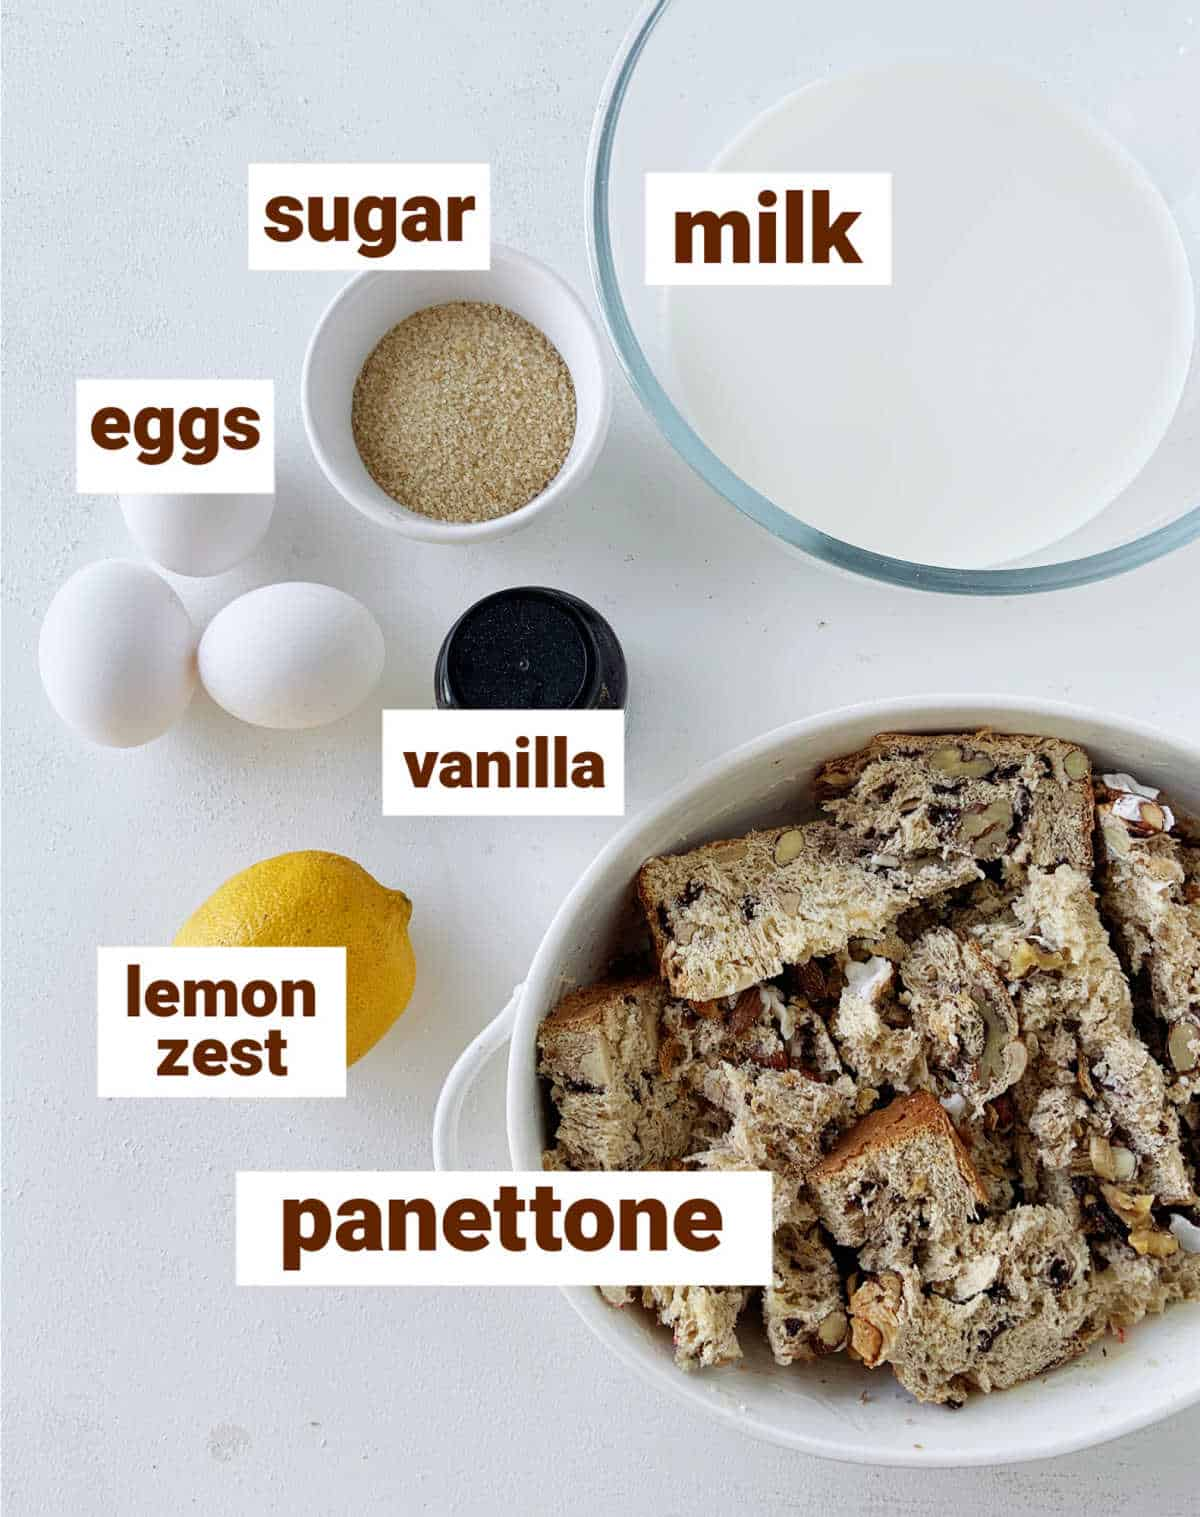 White surface with panettone bread pudding ingredients, including lemon, vanilla and eggs